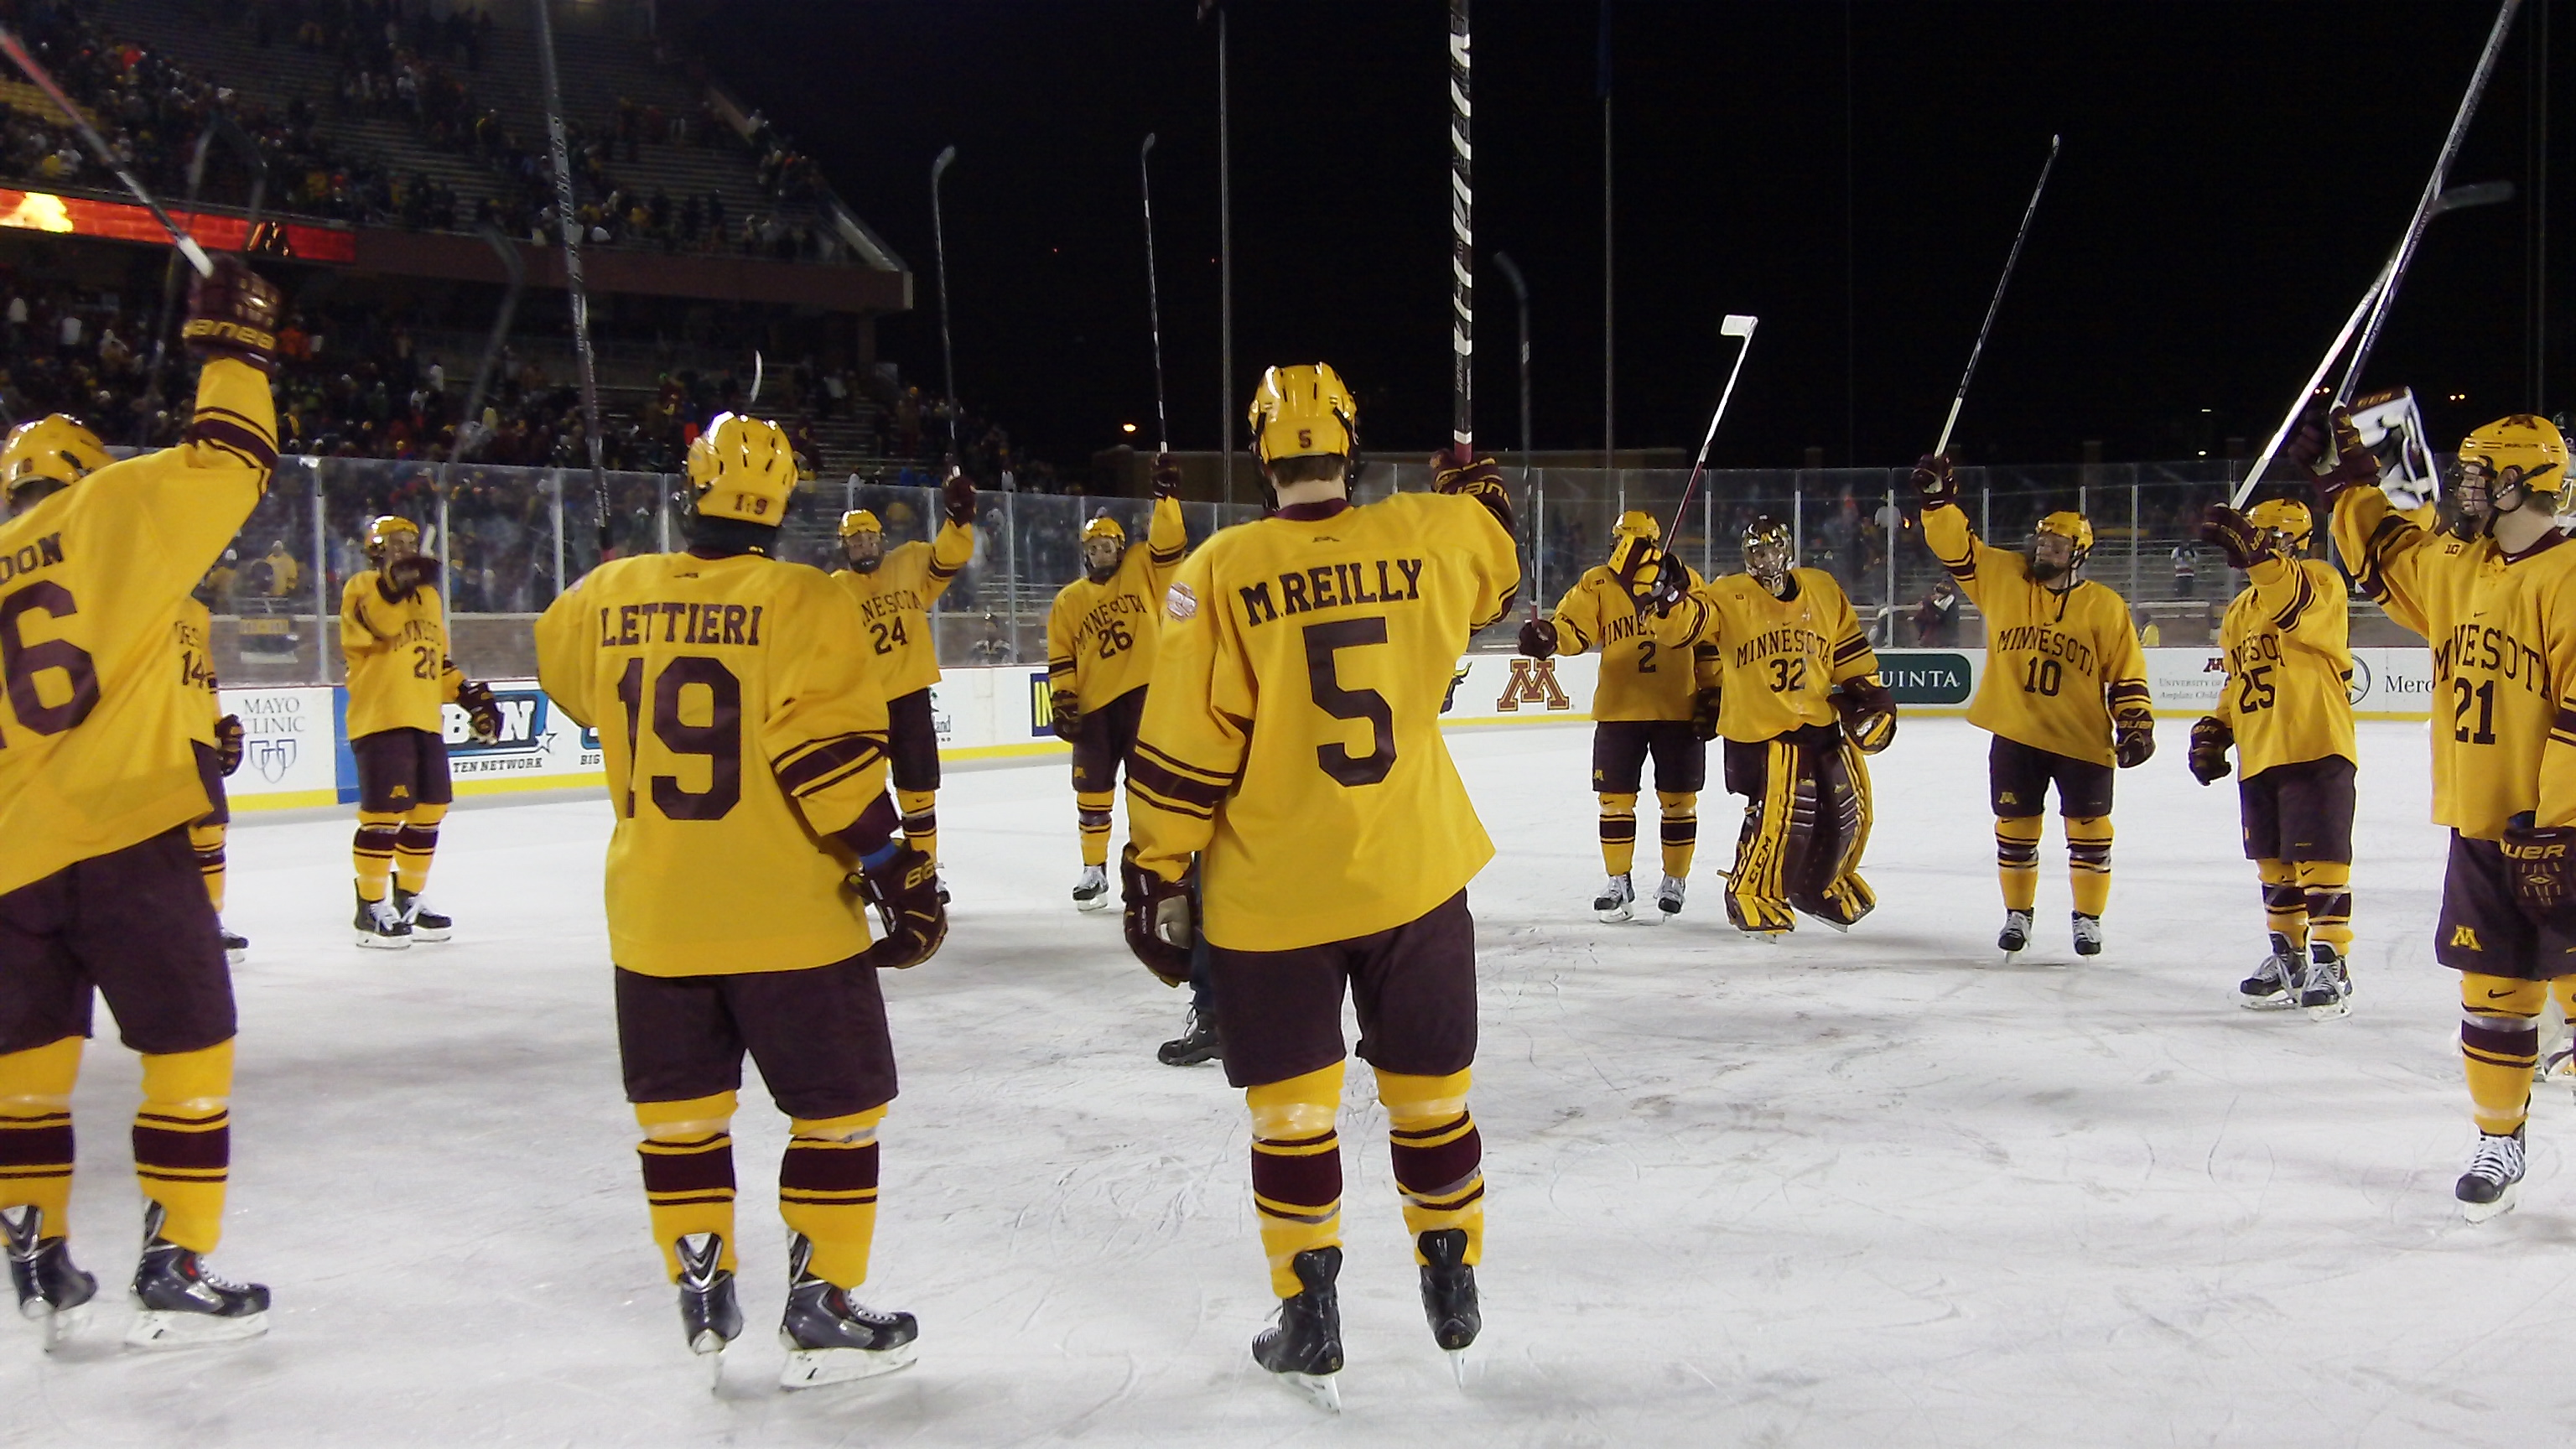 hockey at tcf bank stadium